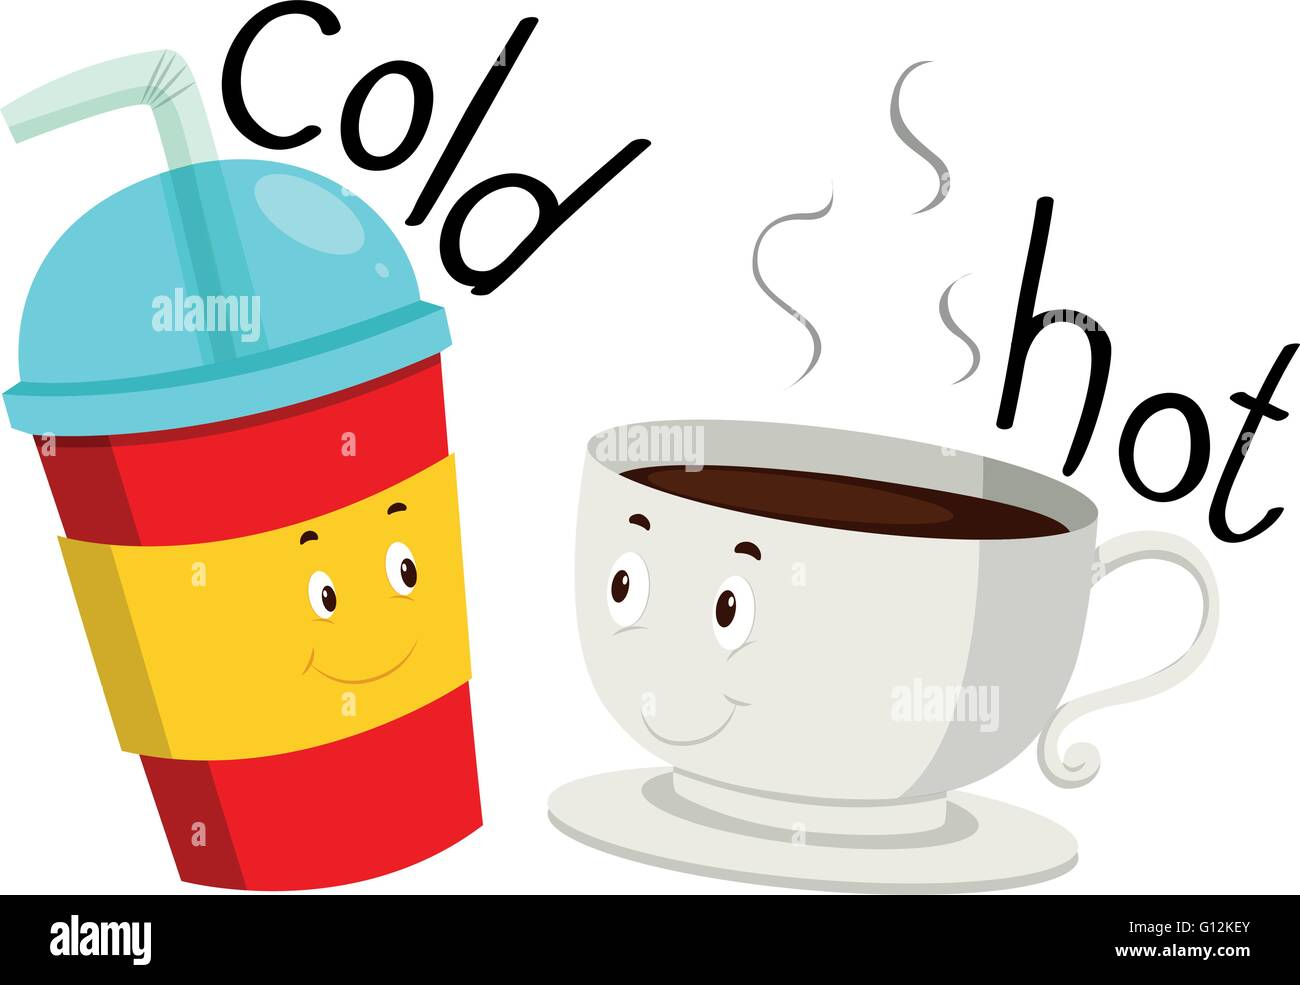 opposite adjective cold and hot illustration stock vector clip art coffee cup and donuts clip art coffee cup and donuts